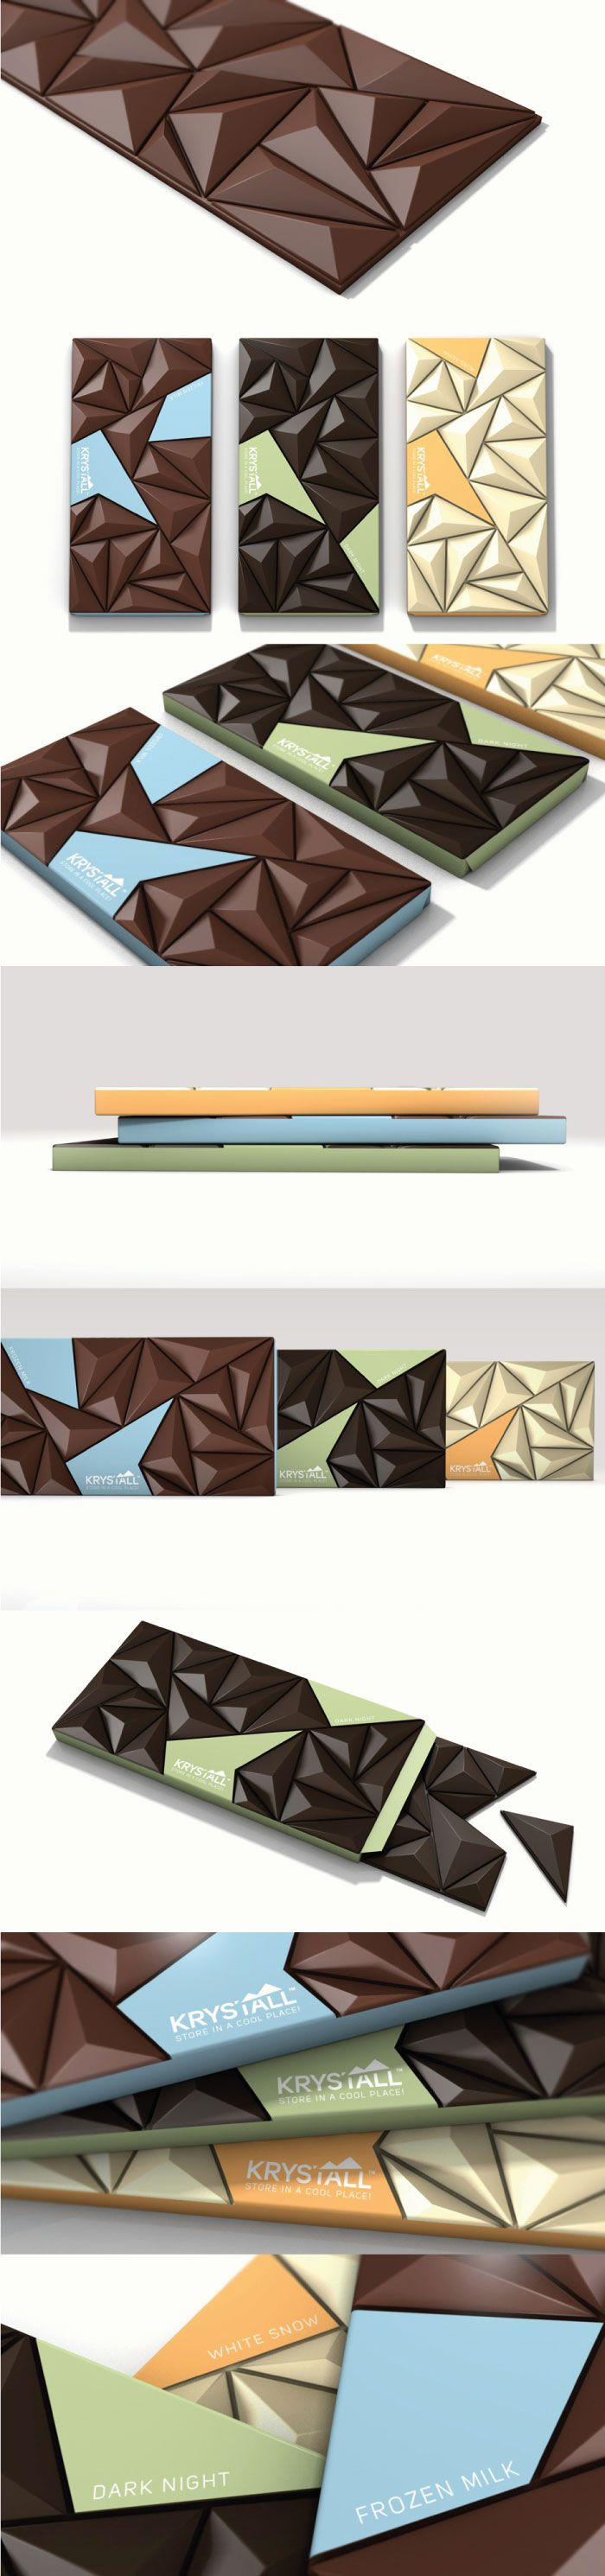 Prisms and chocolate. Everybody's favorite. PD